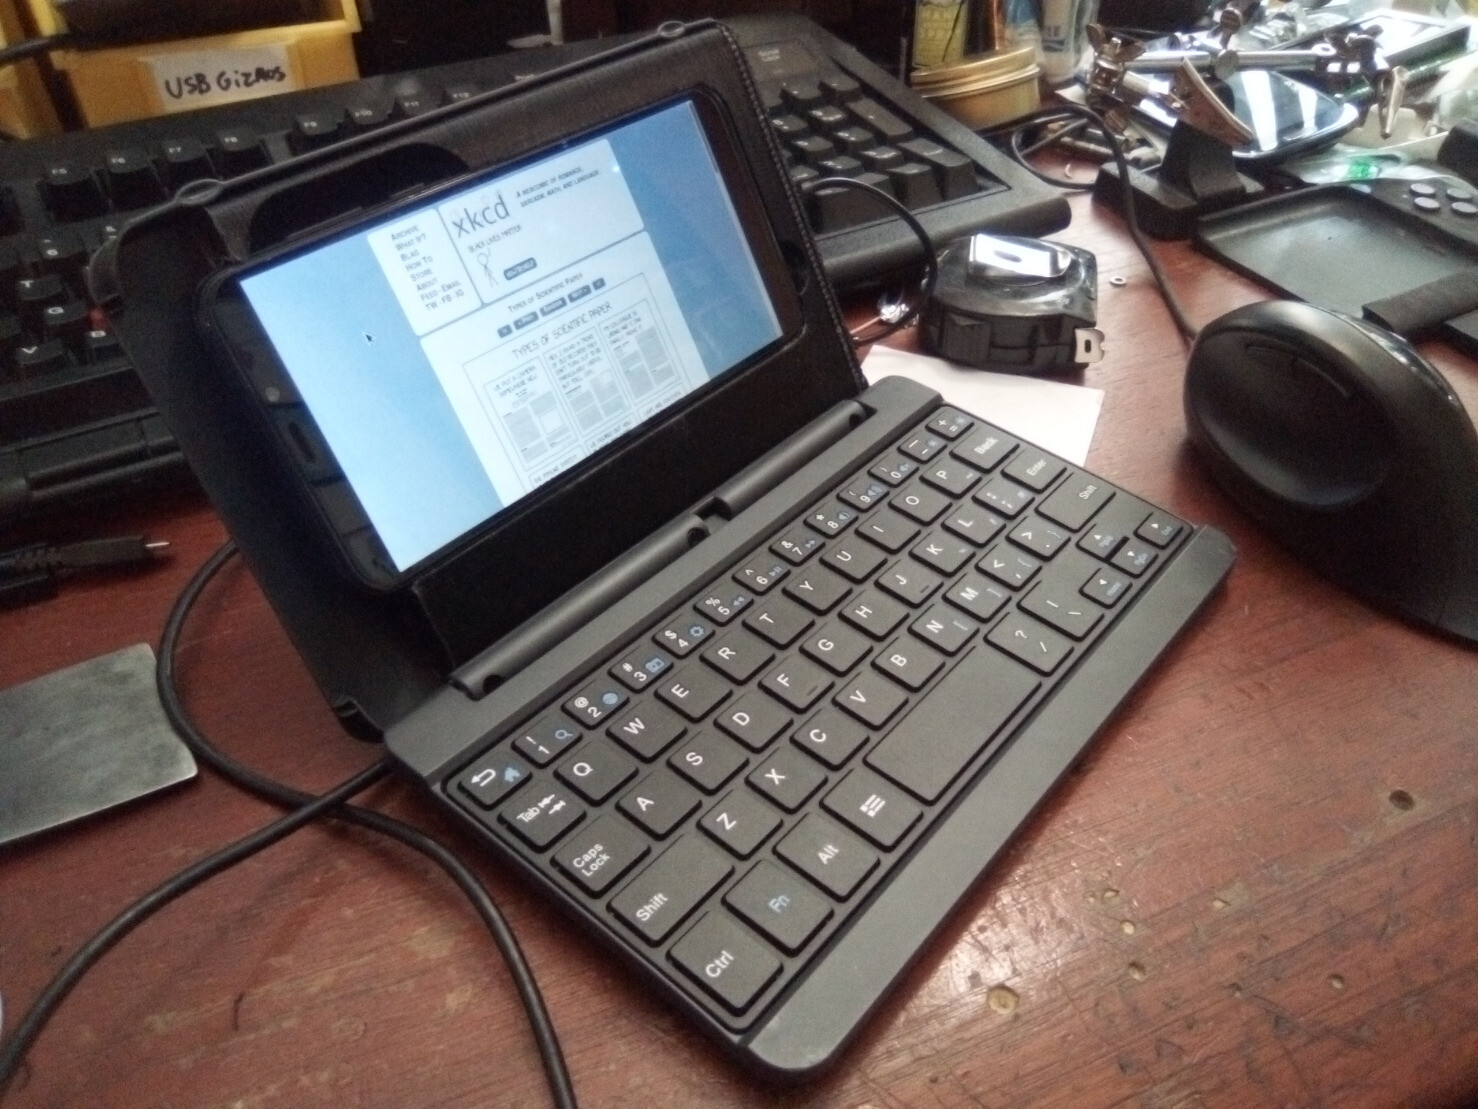 3d printed phone holder in a mildly hacked laptop style tablet keyboard case holding a pinephone from left